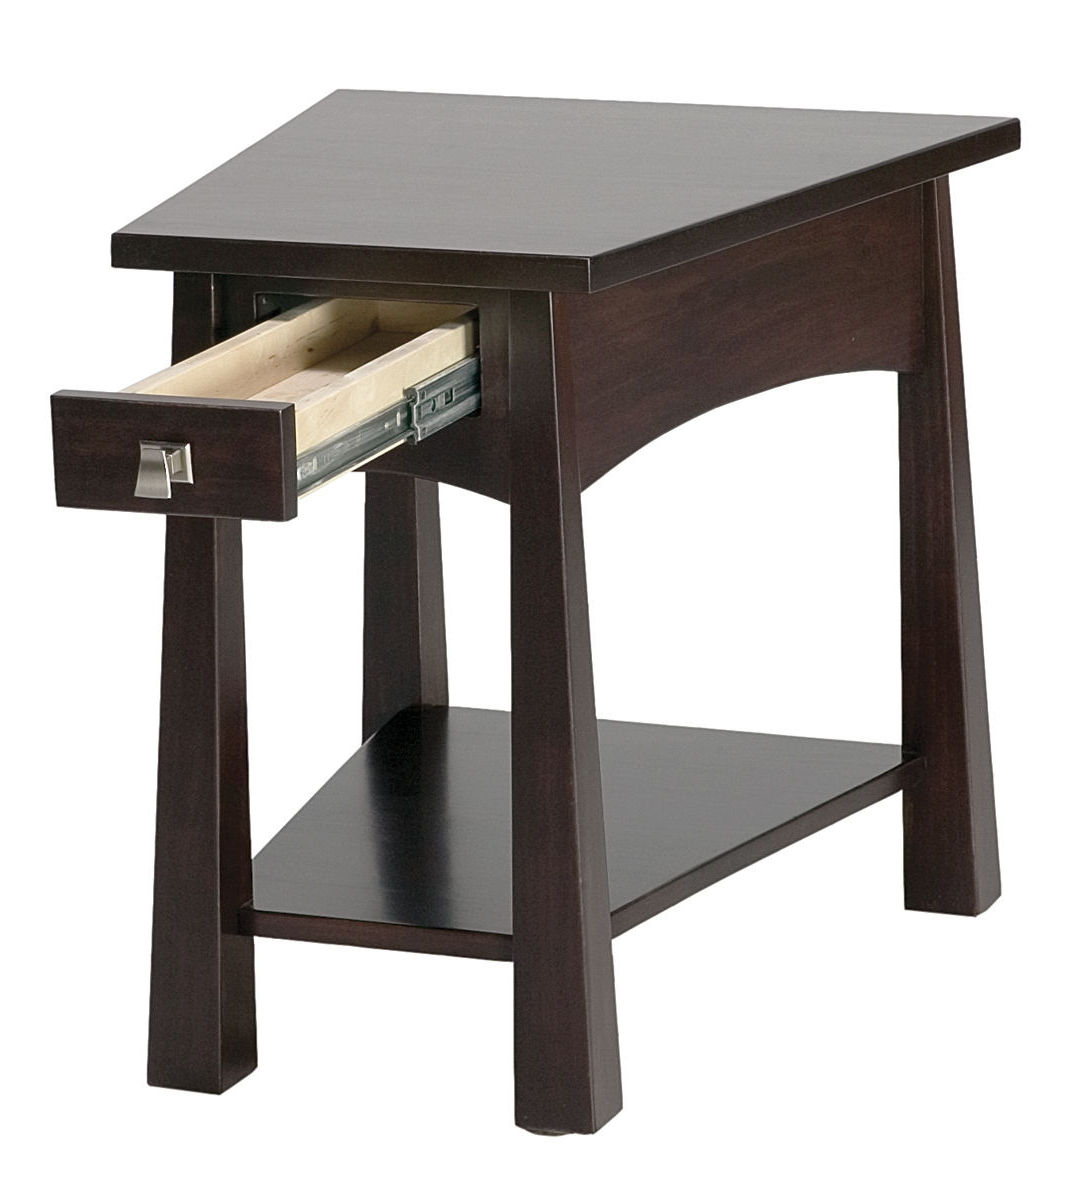 living room end tables furniture for small black table bench wood modern coffee untreated diy wine crate thomasville direct from dark bedside drawers round sofa arm side ethan